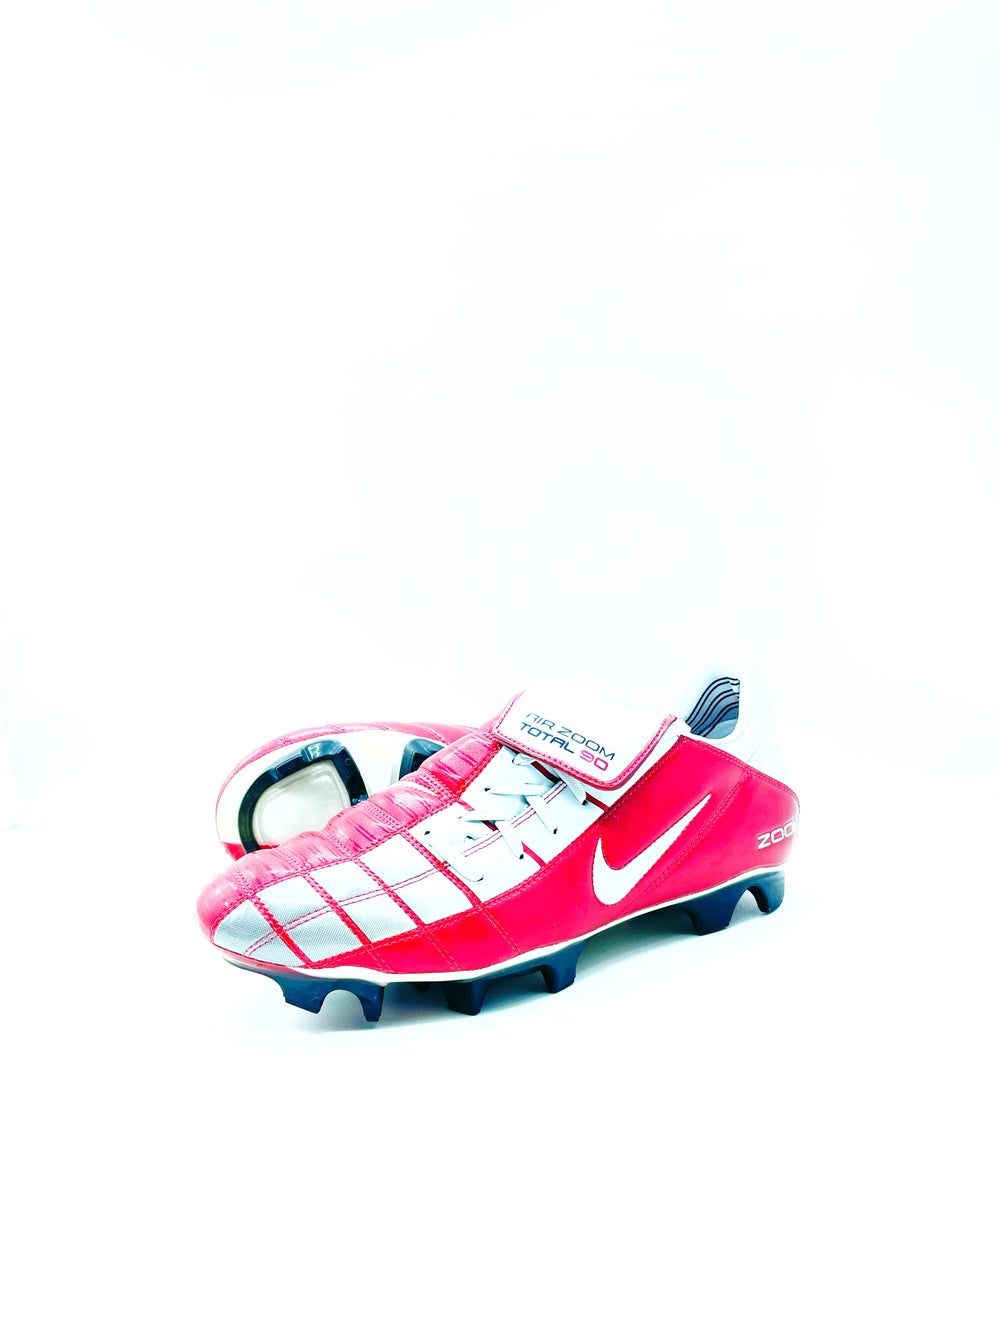 Image of Nike air Zoom Total 90 II FG RED